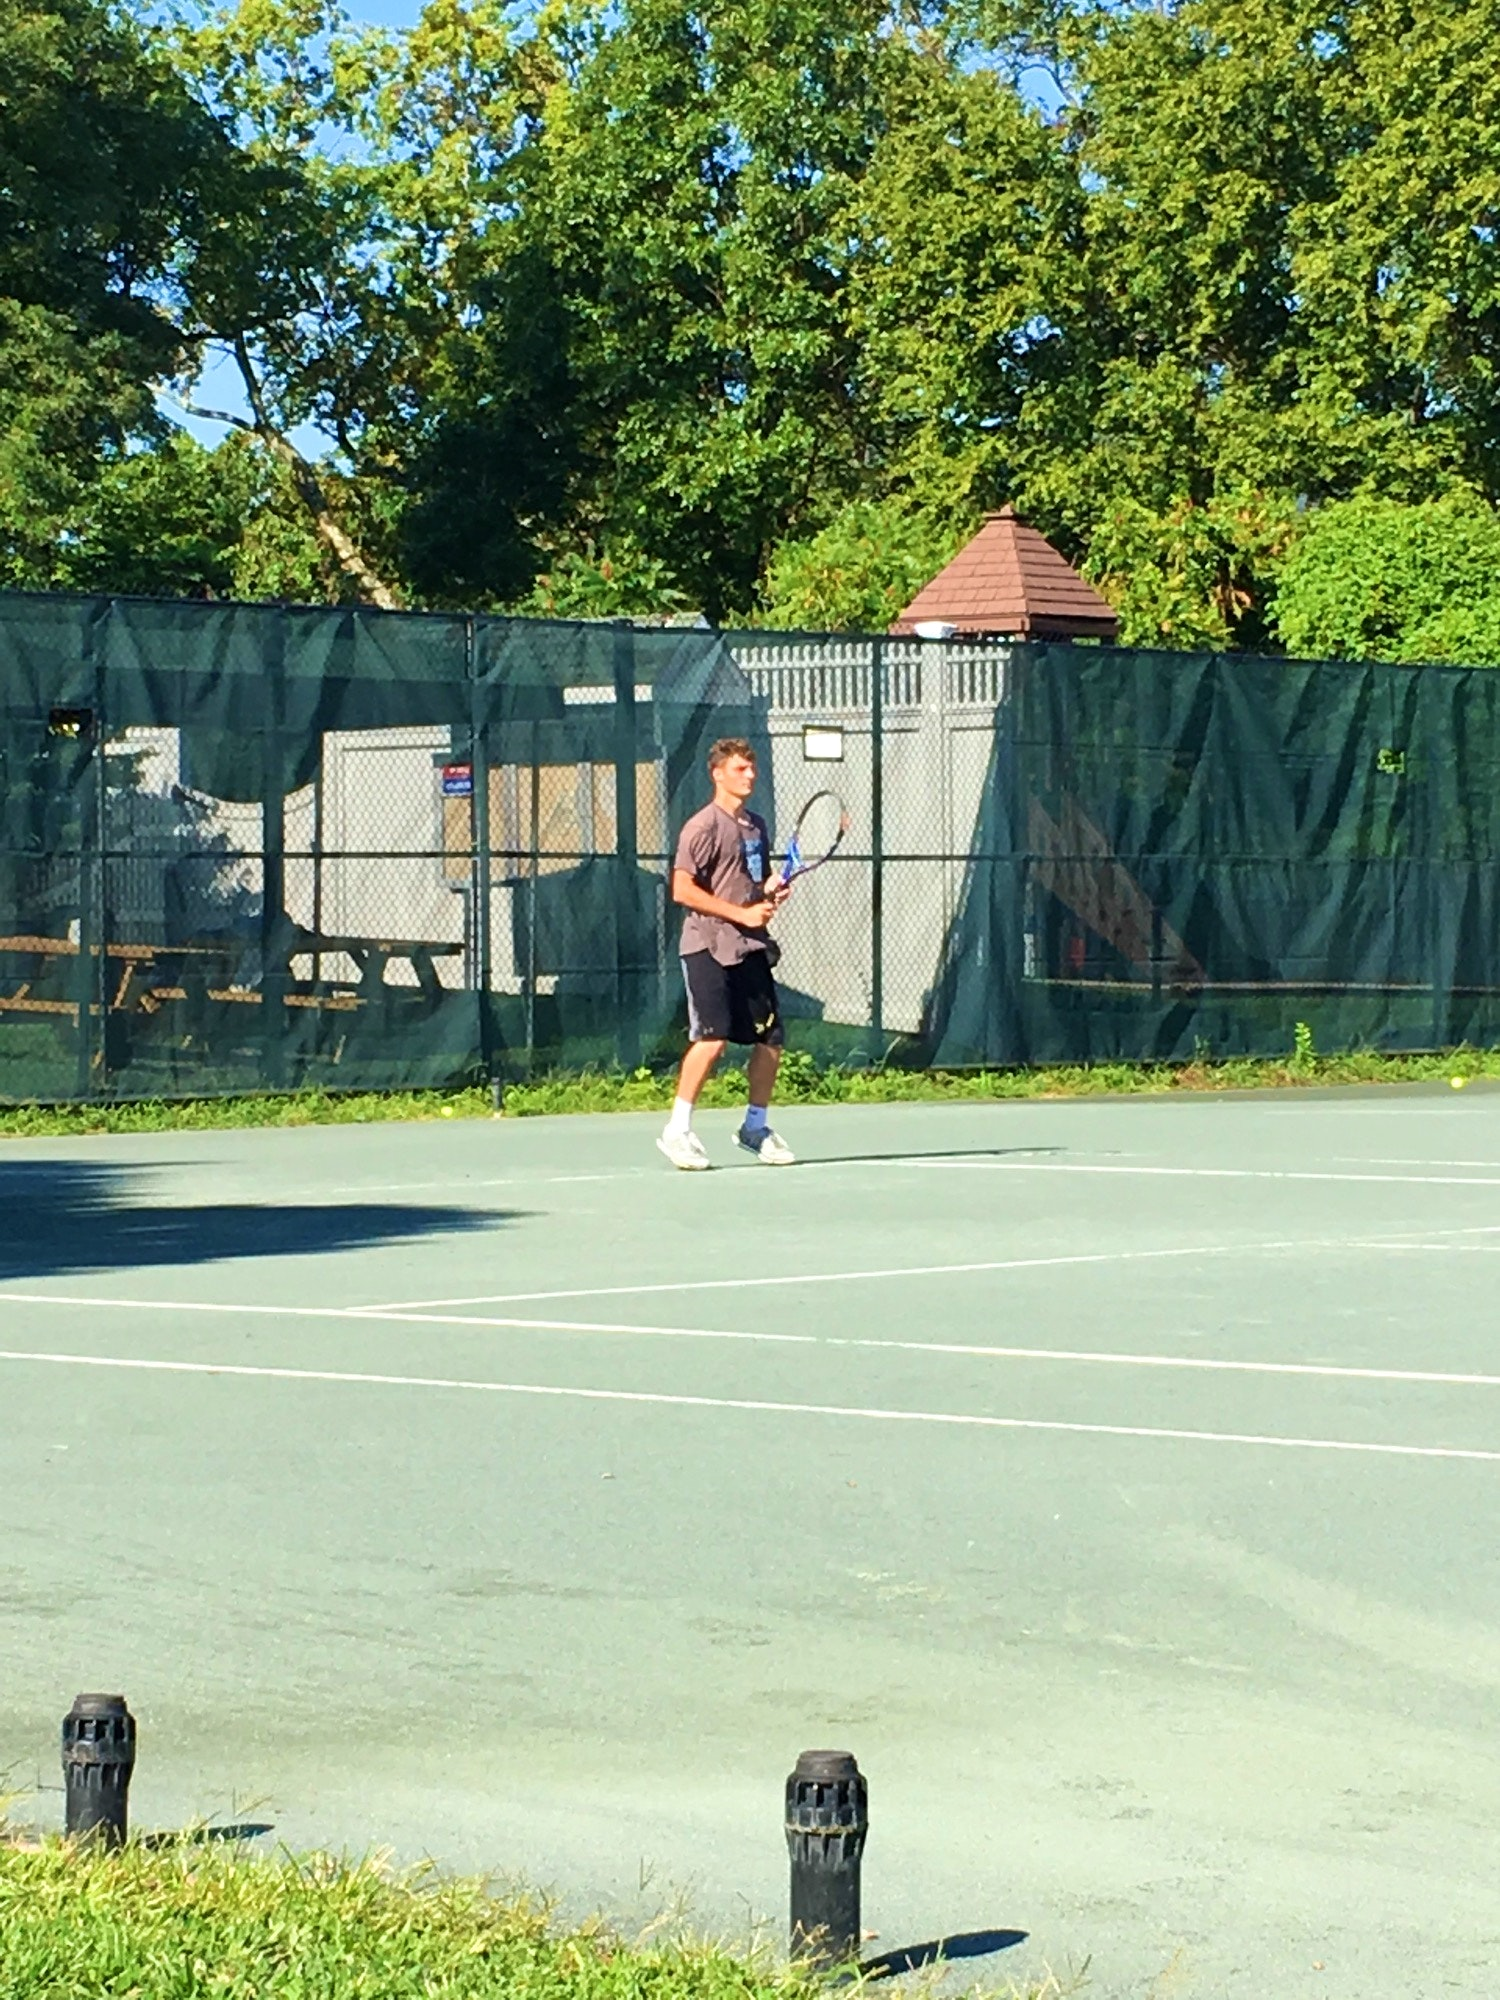 Philip teaches tennis lessons in Saratoga Springs, NY